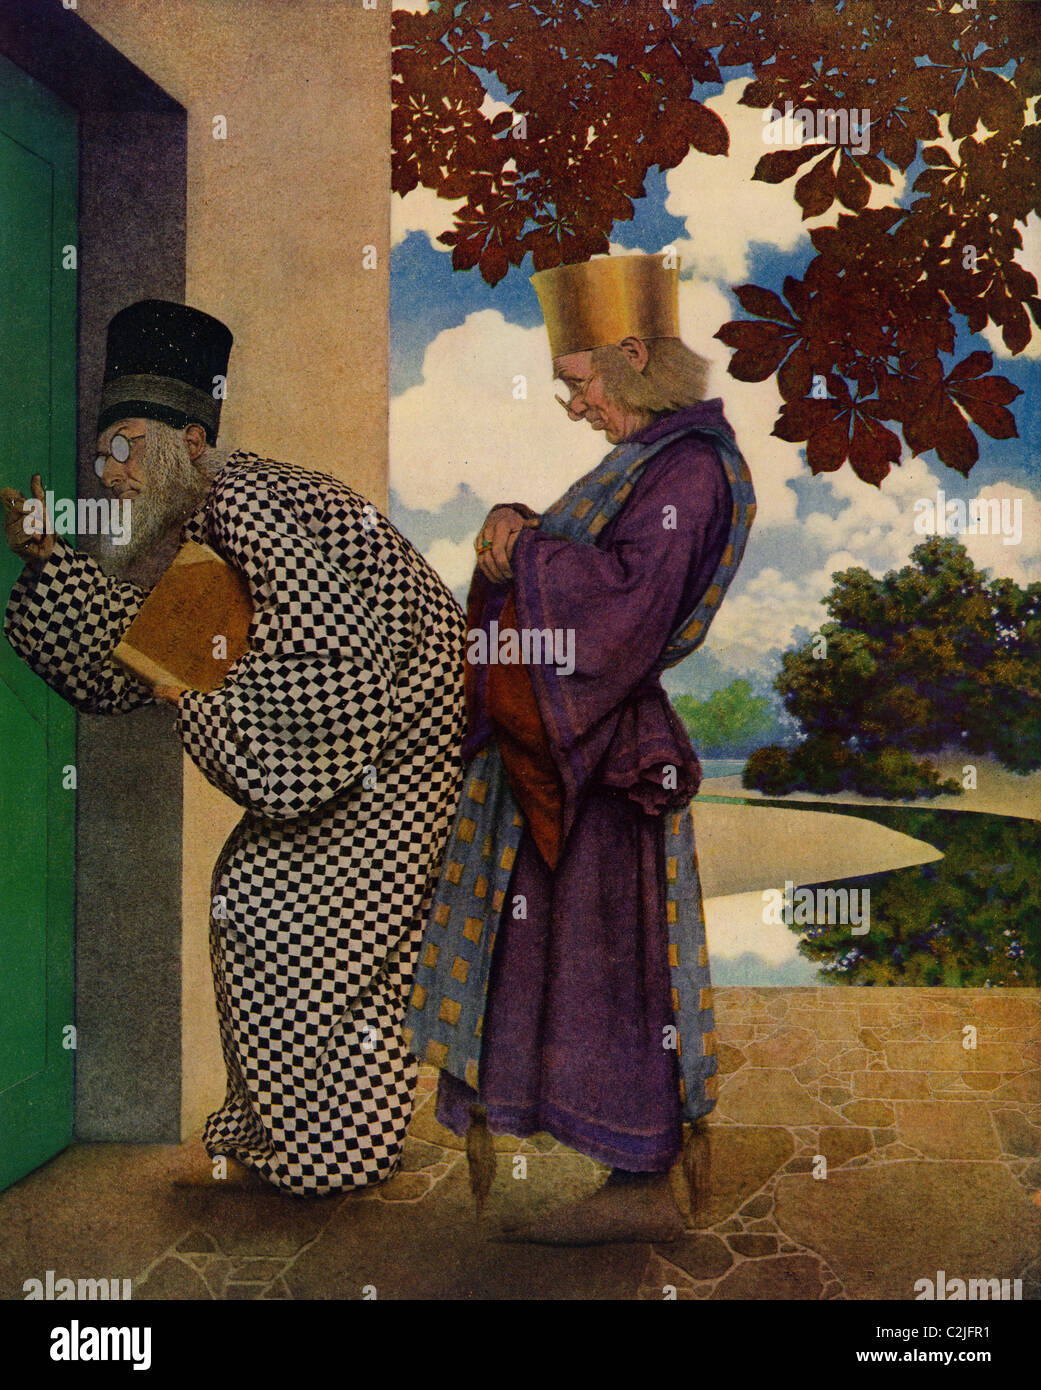 Knave of Hearts - wise men knocking at the door - Stock Image